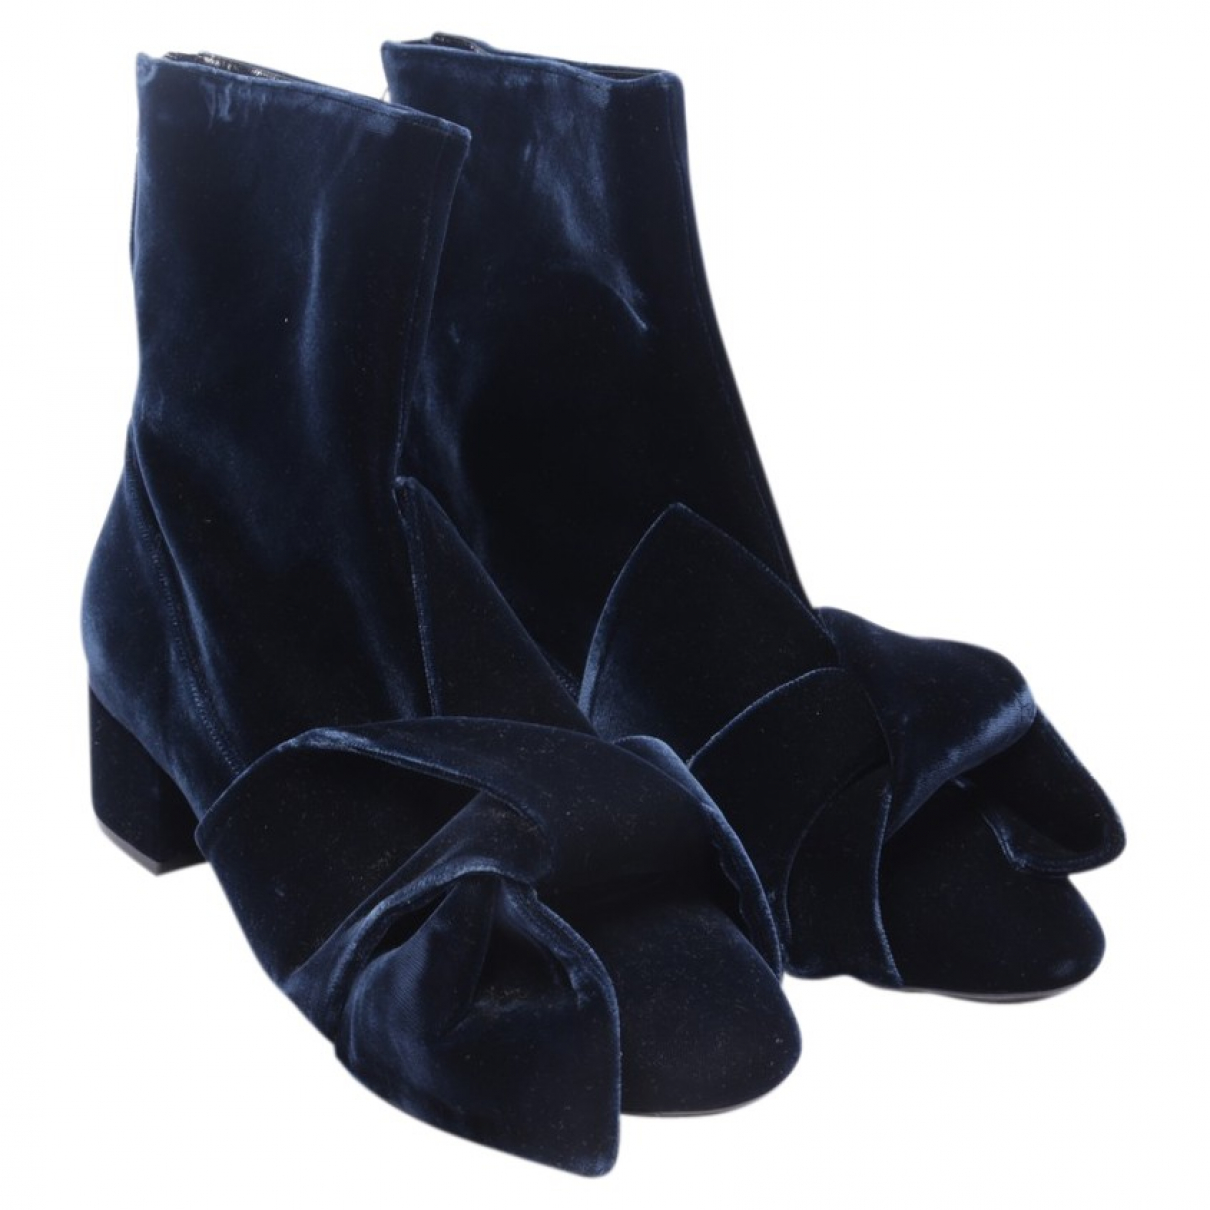 N°21 \N Blue Leather Ankle boots for Women 40 EU